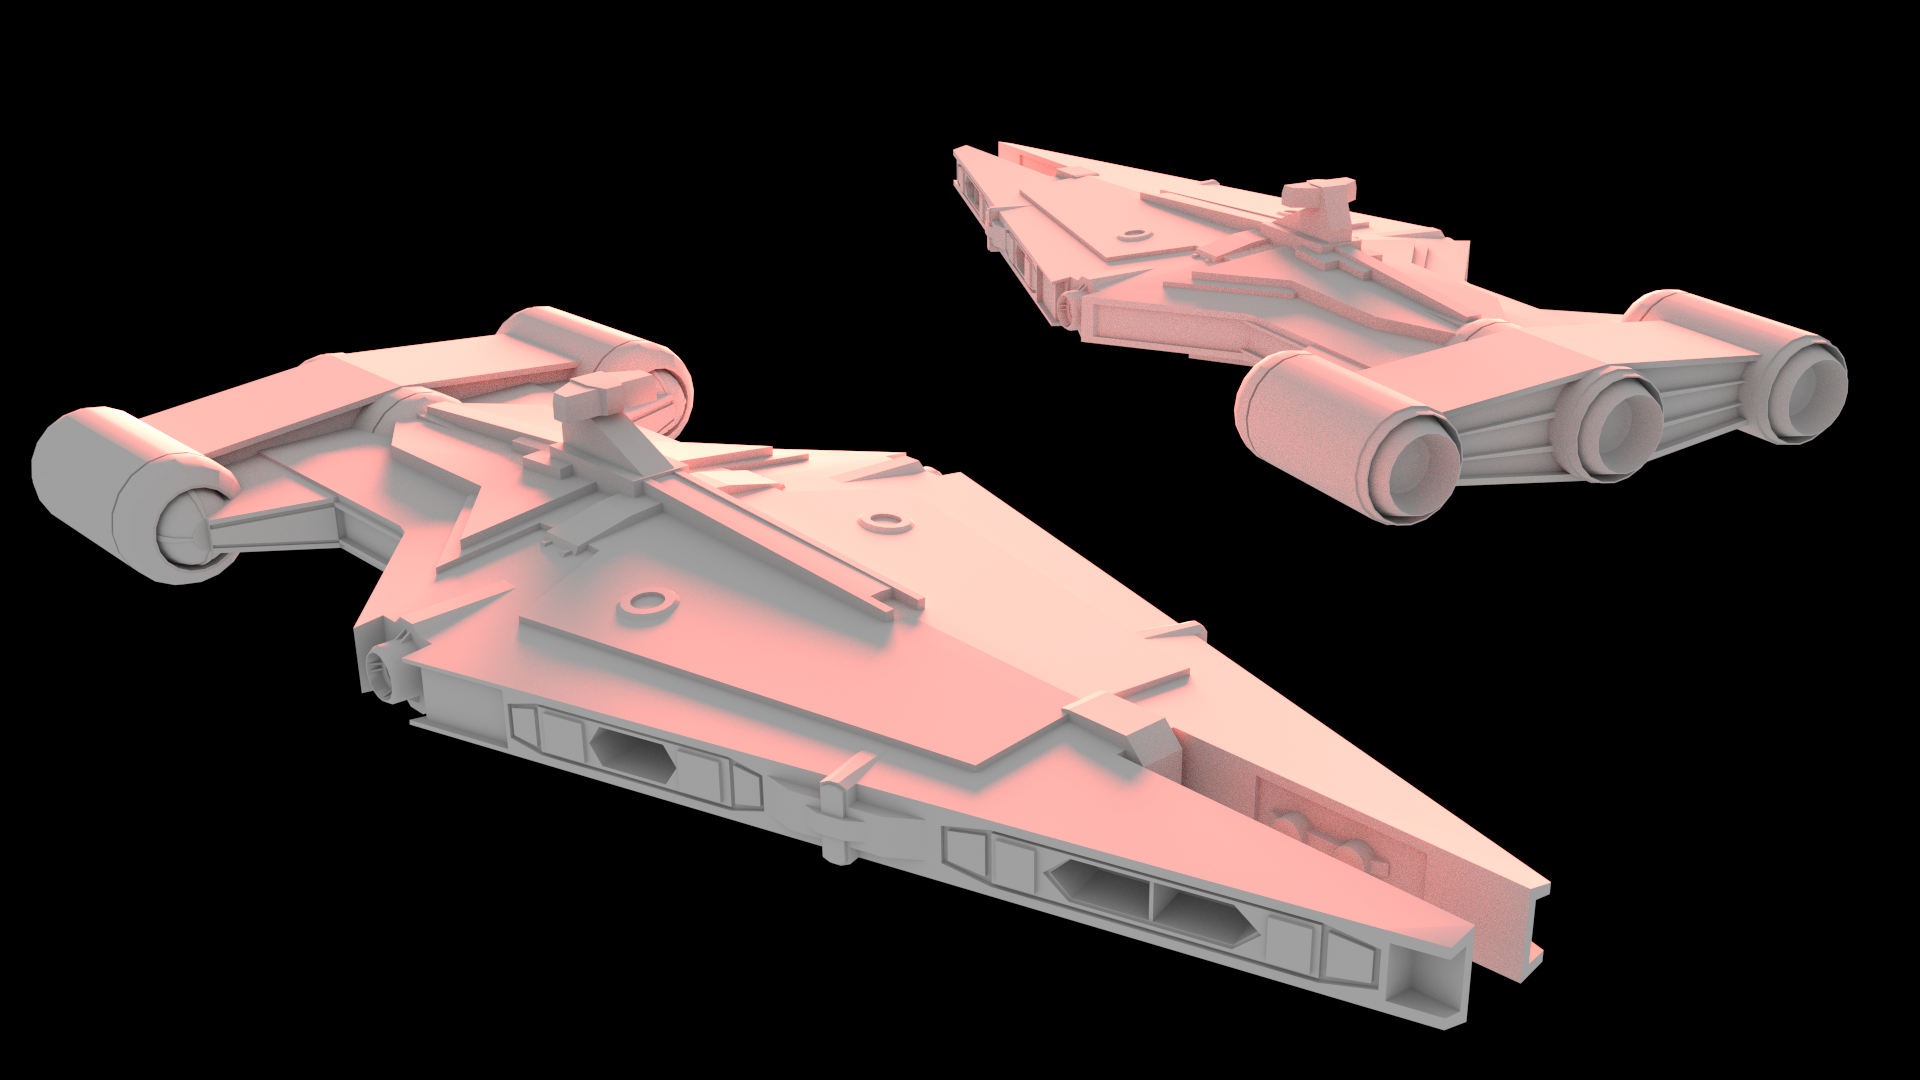 Arquitens Class Light Cruiser Image Elites Conflict Mod For Star